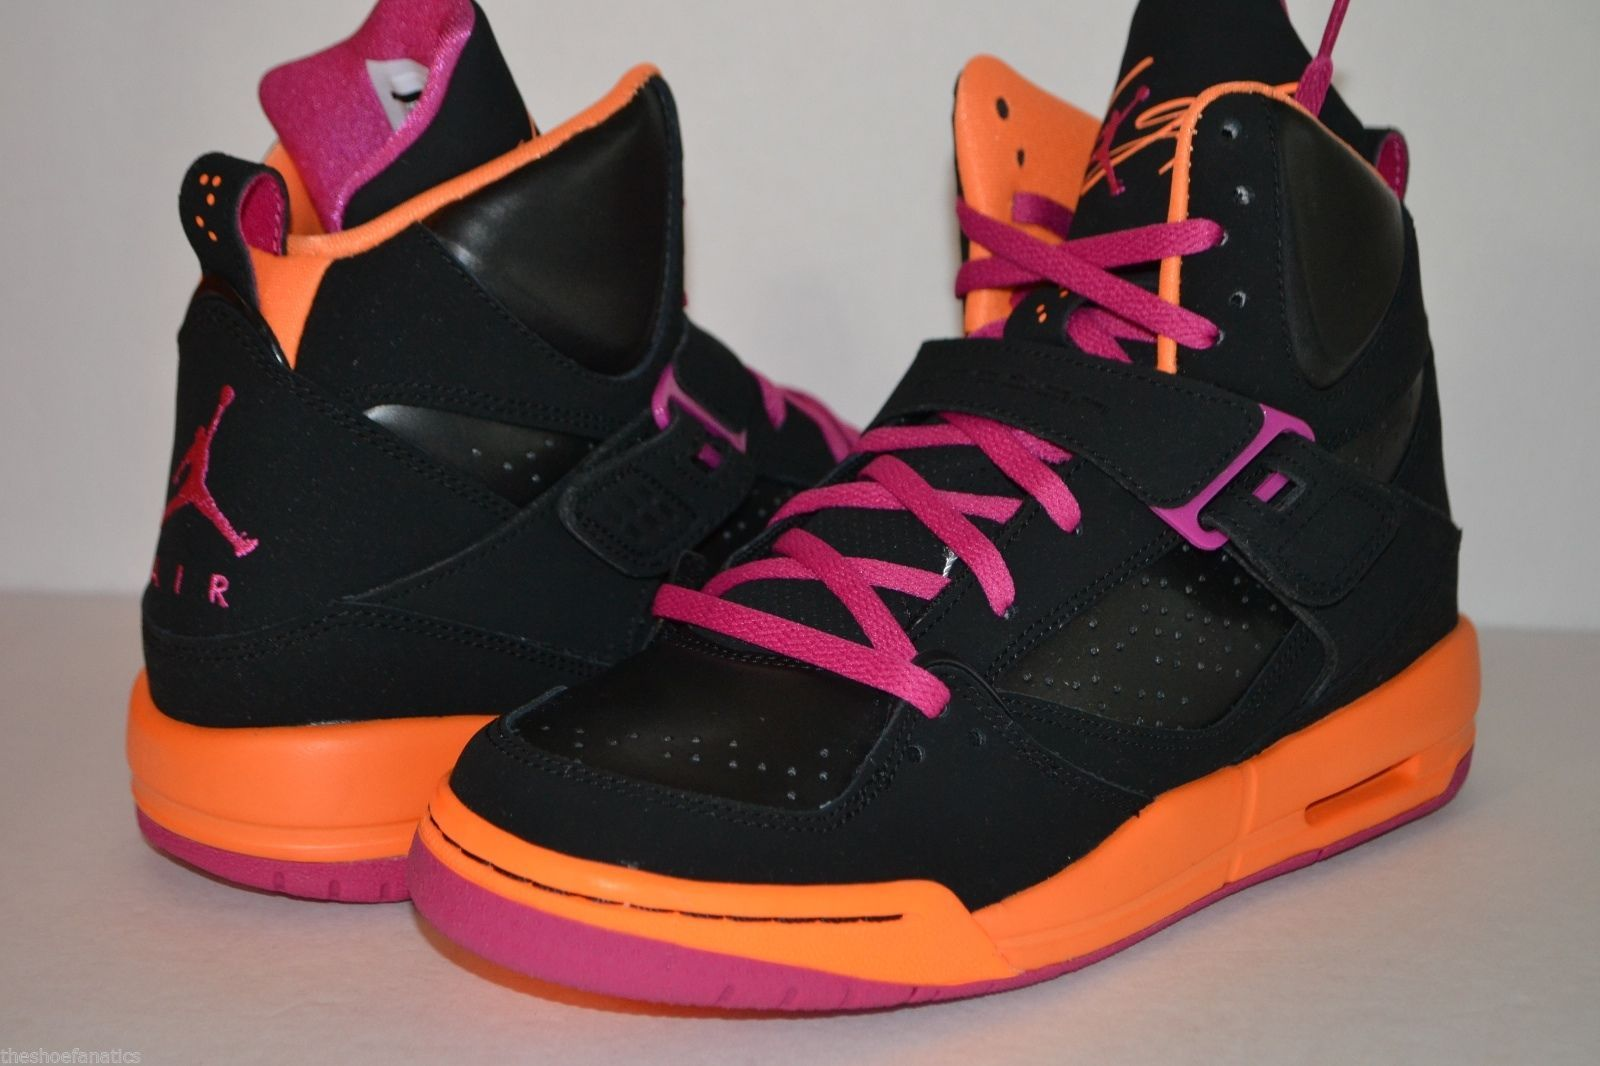 fbb7ddddd0f6e6 NIKE AIR JORDAN FLIGHT 45 HIGH SIZE 6.5Y WOMENS 8 BLACK PINK ORANGE  524864-028